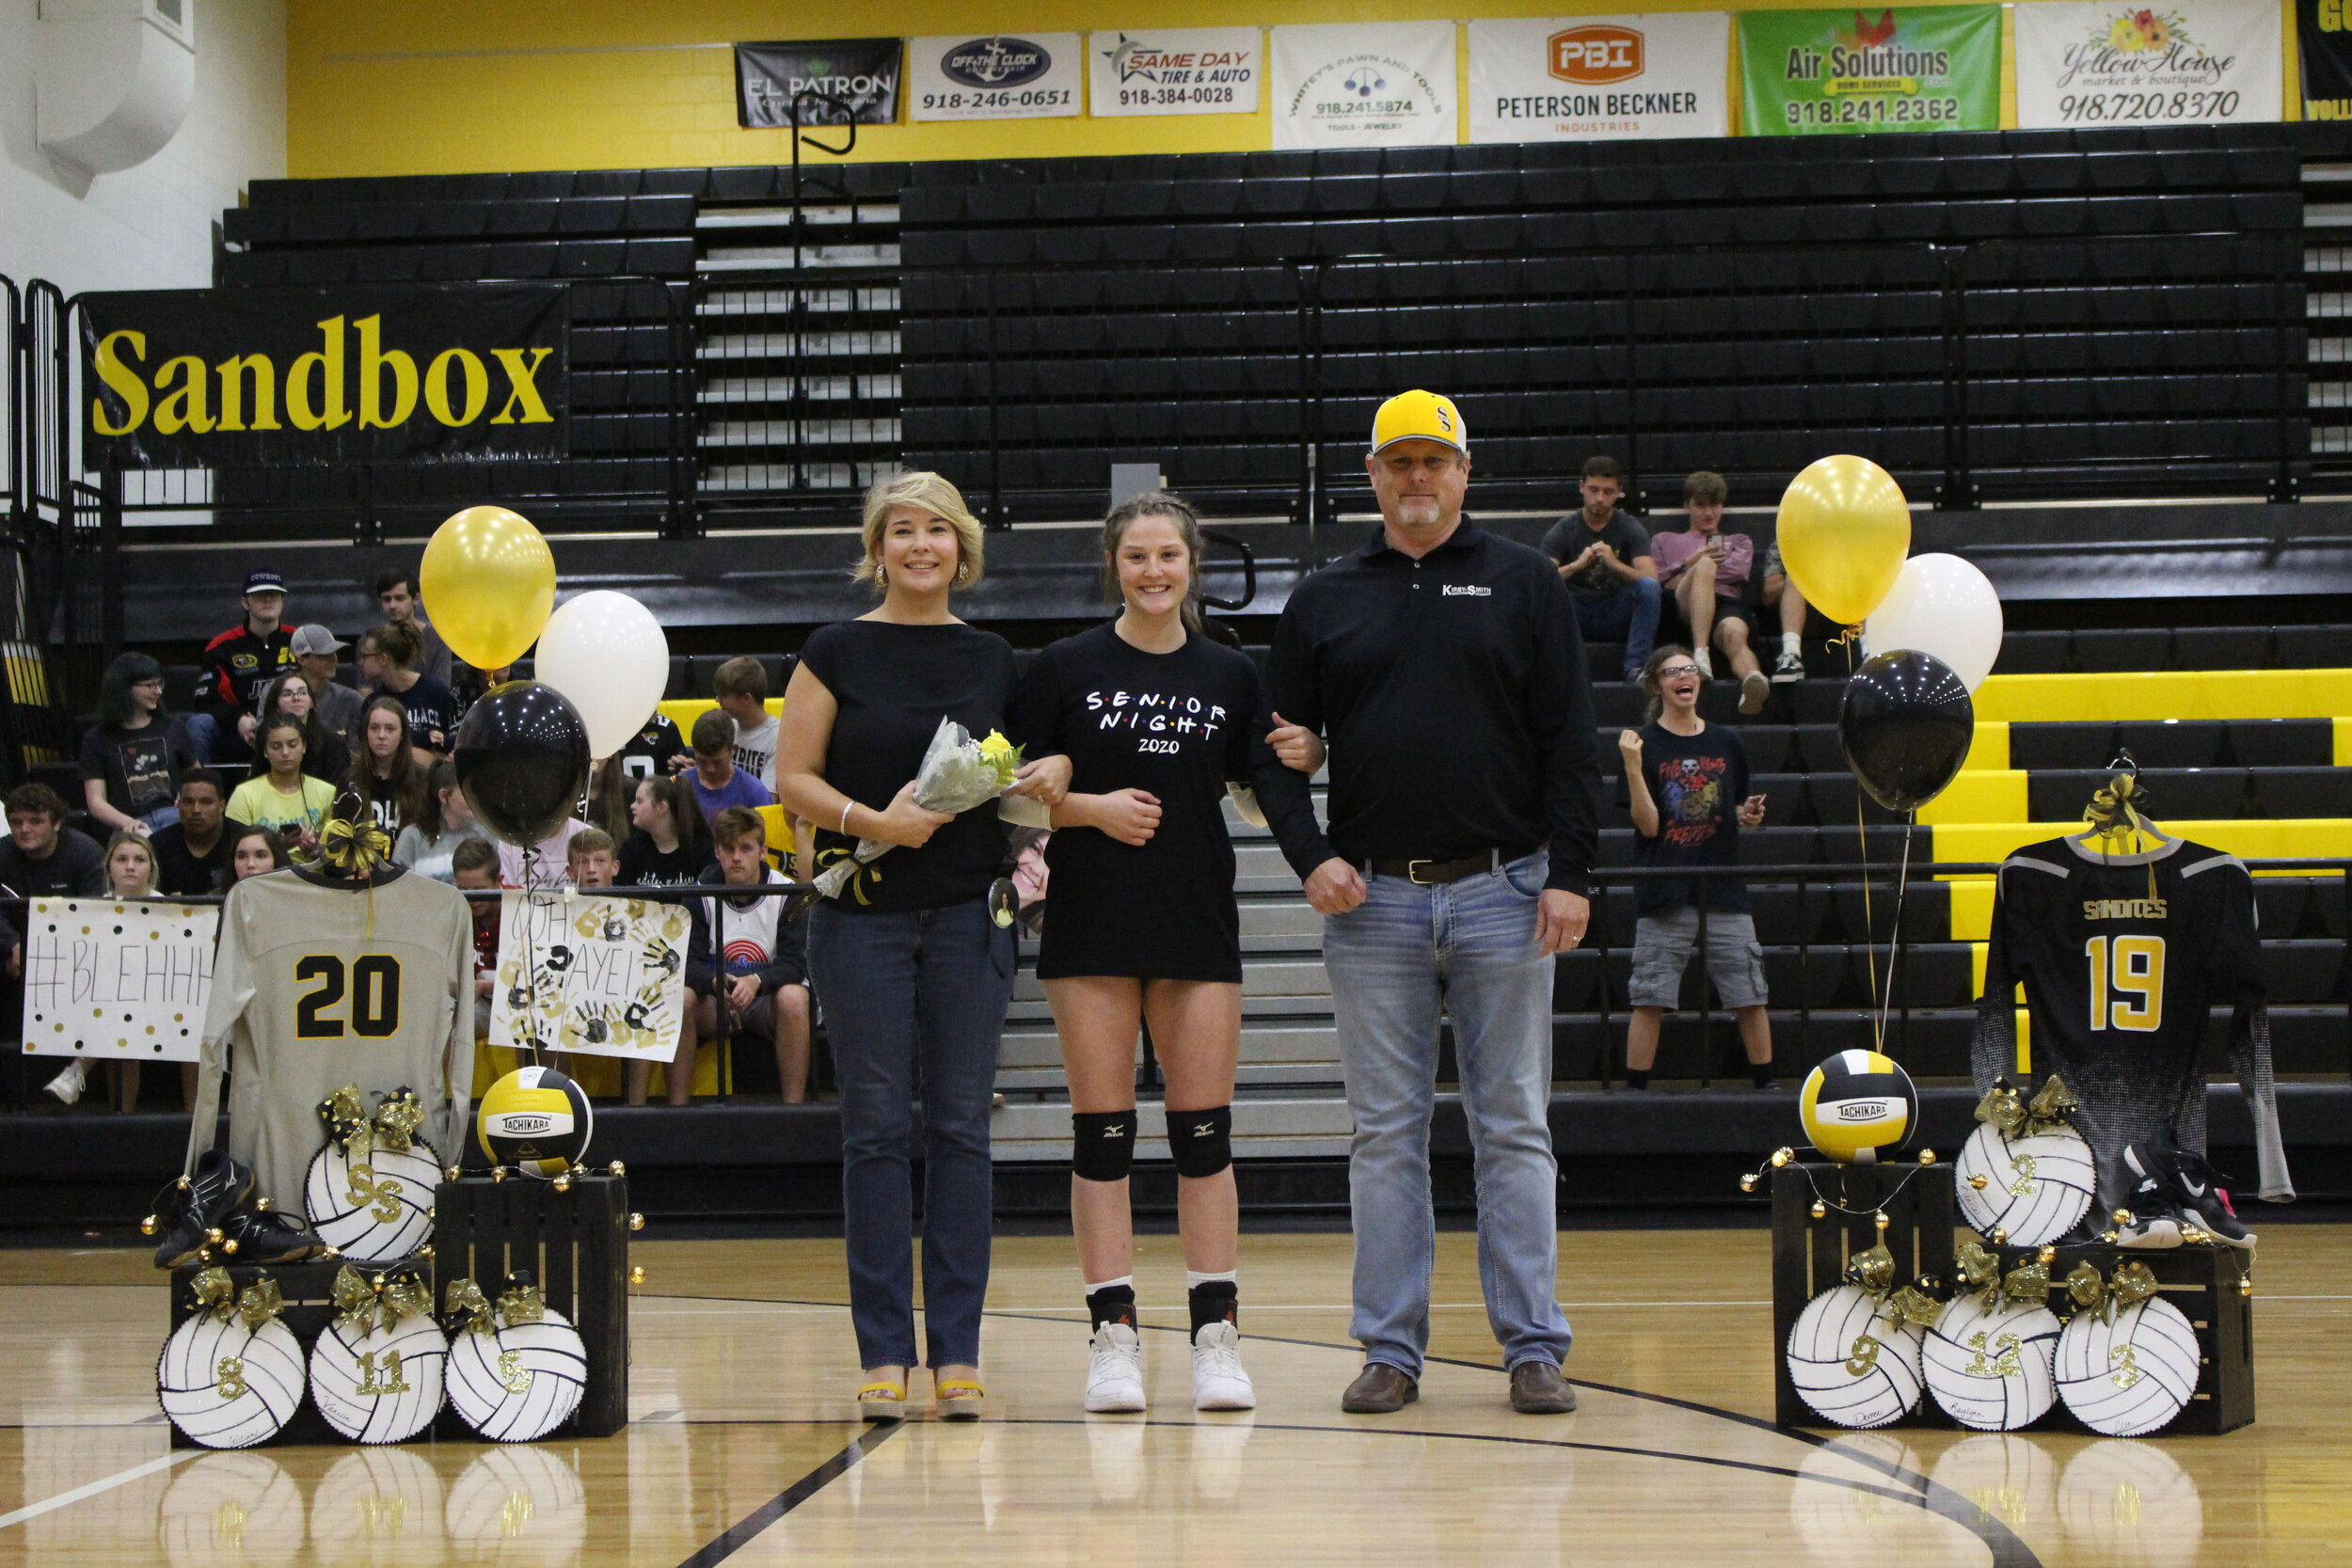 """Madison Burris (S, RSH), escorted by parents Brian and Jamie Burris. She has played Sandite Volleyball for 6 years, plays on the Girl's Basketball Team, and is a member of National Honor Society. She is undecided on a college, but plans on majoring in Interior Design and Business.  Burris's favorite volleyball memory was Senior Night two years ago when the Sandites swept Ponca City 3-0. """"It was the best game ever,"""" says Burris.  """"Thank you to my whole family and friends for all the support they've always give men. Also, thank you to my coaches and past coaches throughout the years."""""""